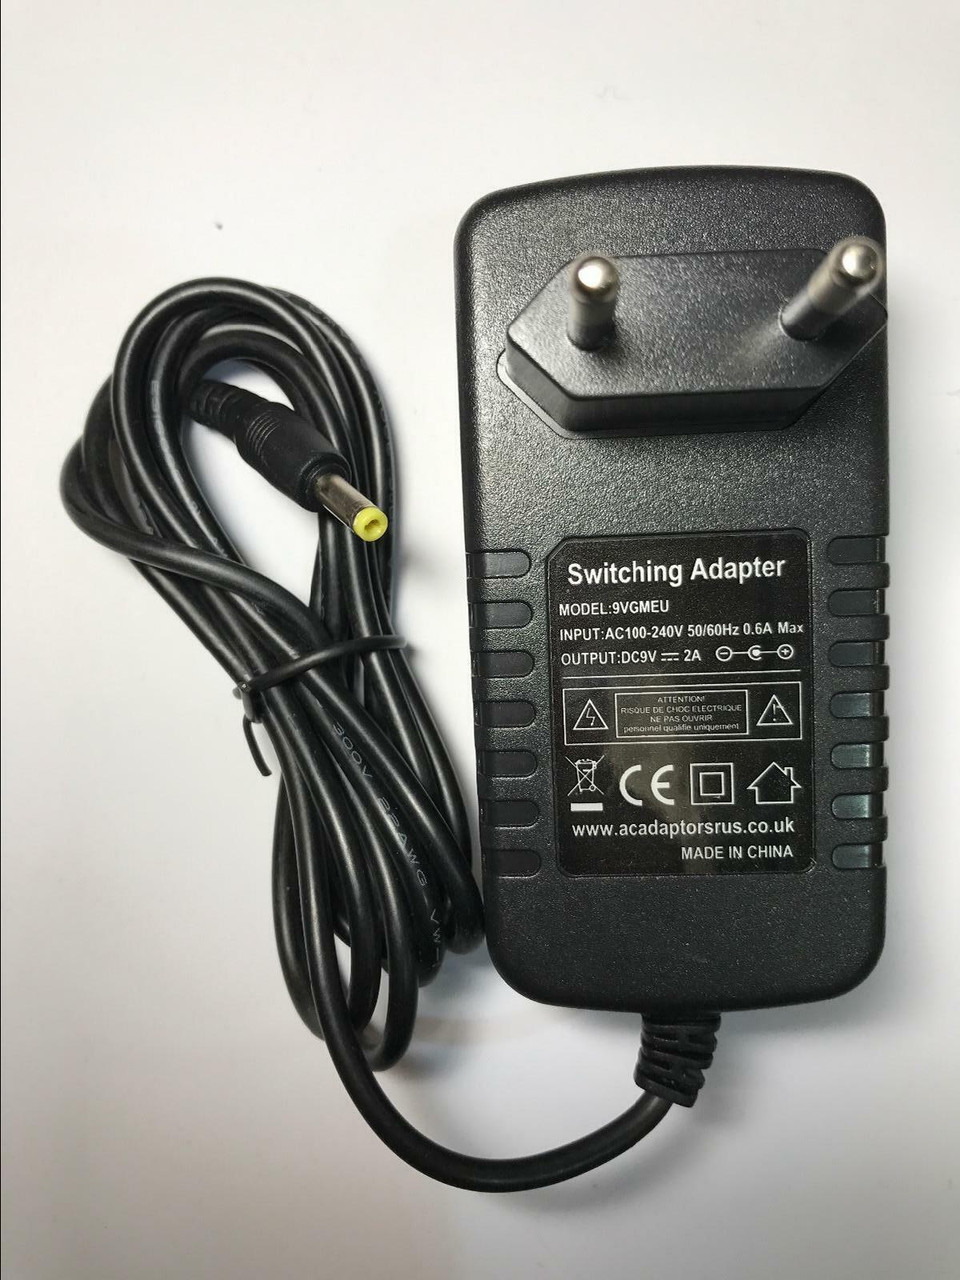 Adaptor GOOD LEAD 9 Volt Mains AC//DC Adapter Which Is Compatible With PHILIPS DC315//05 Device Power Lead Switch Mode Power Supply Charger